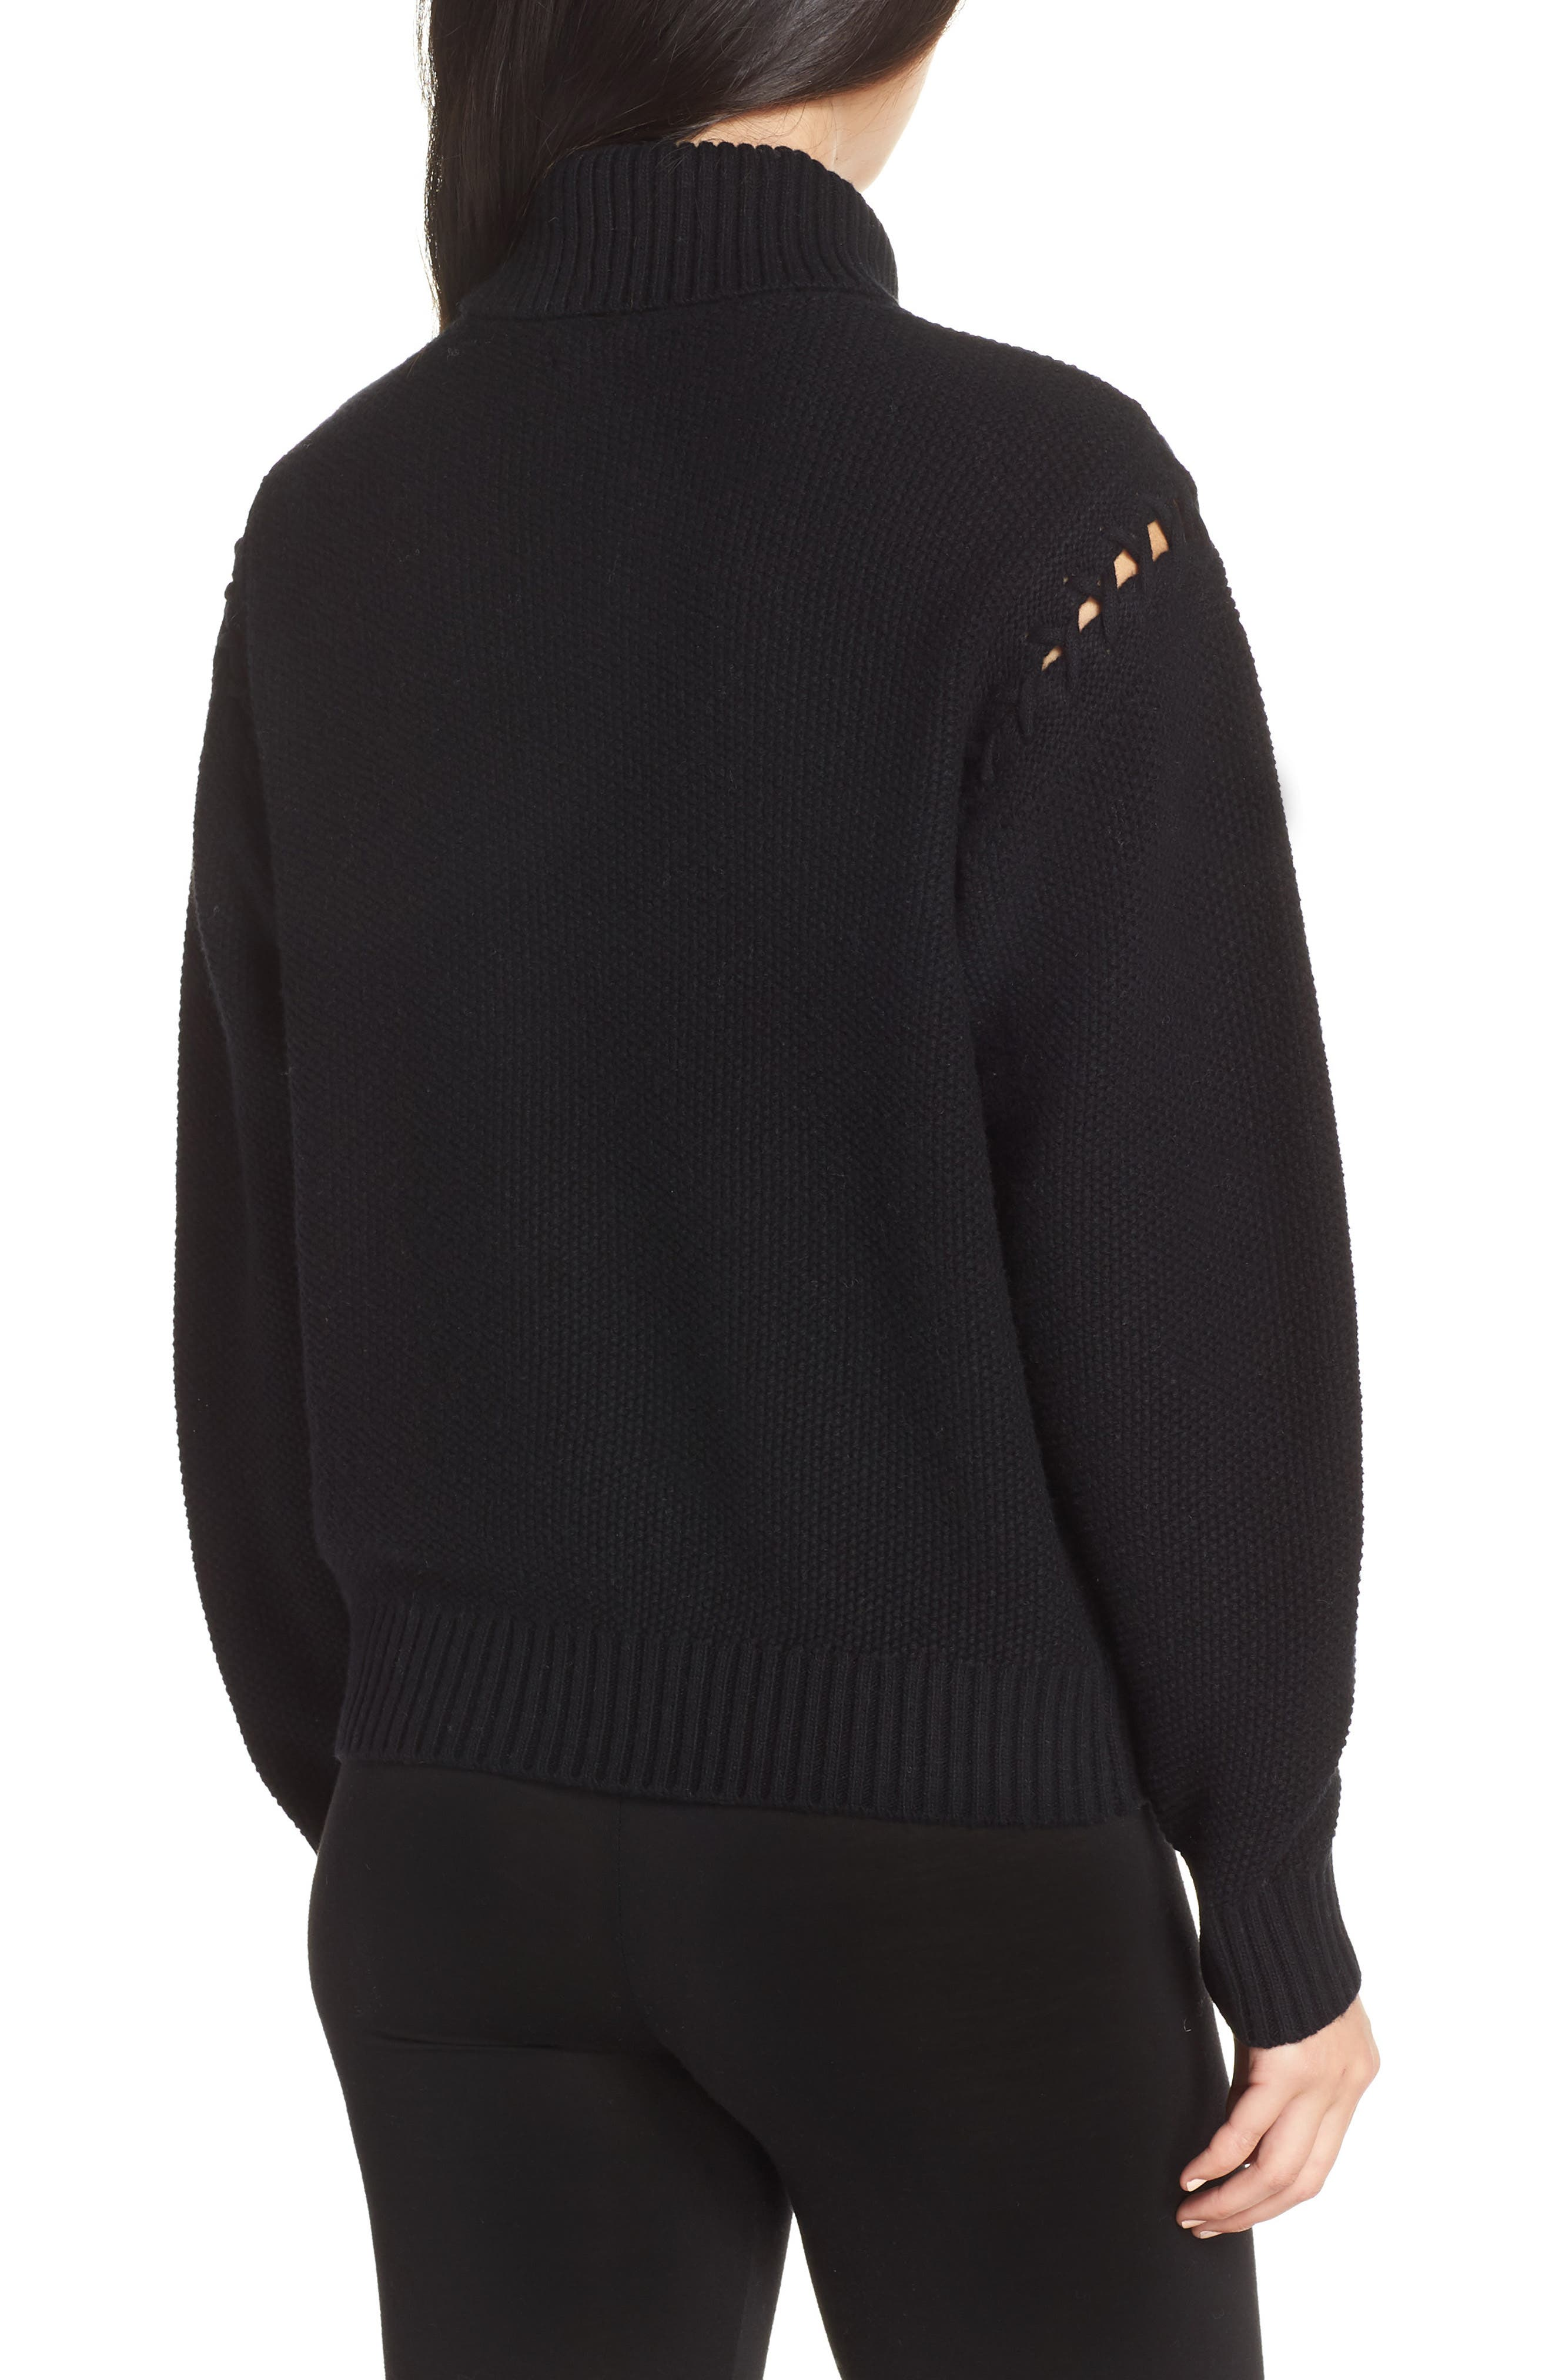 Gisele Turtleneck Sweater,                             Alternate thumbnail 2, color,                             BLACK